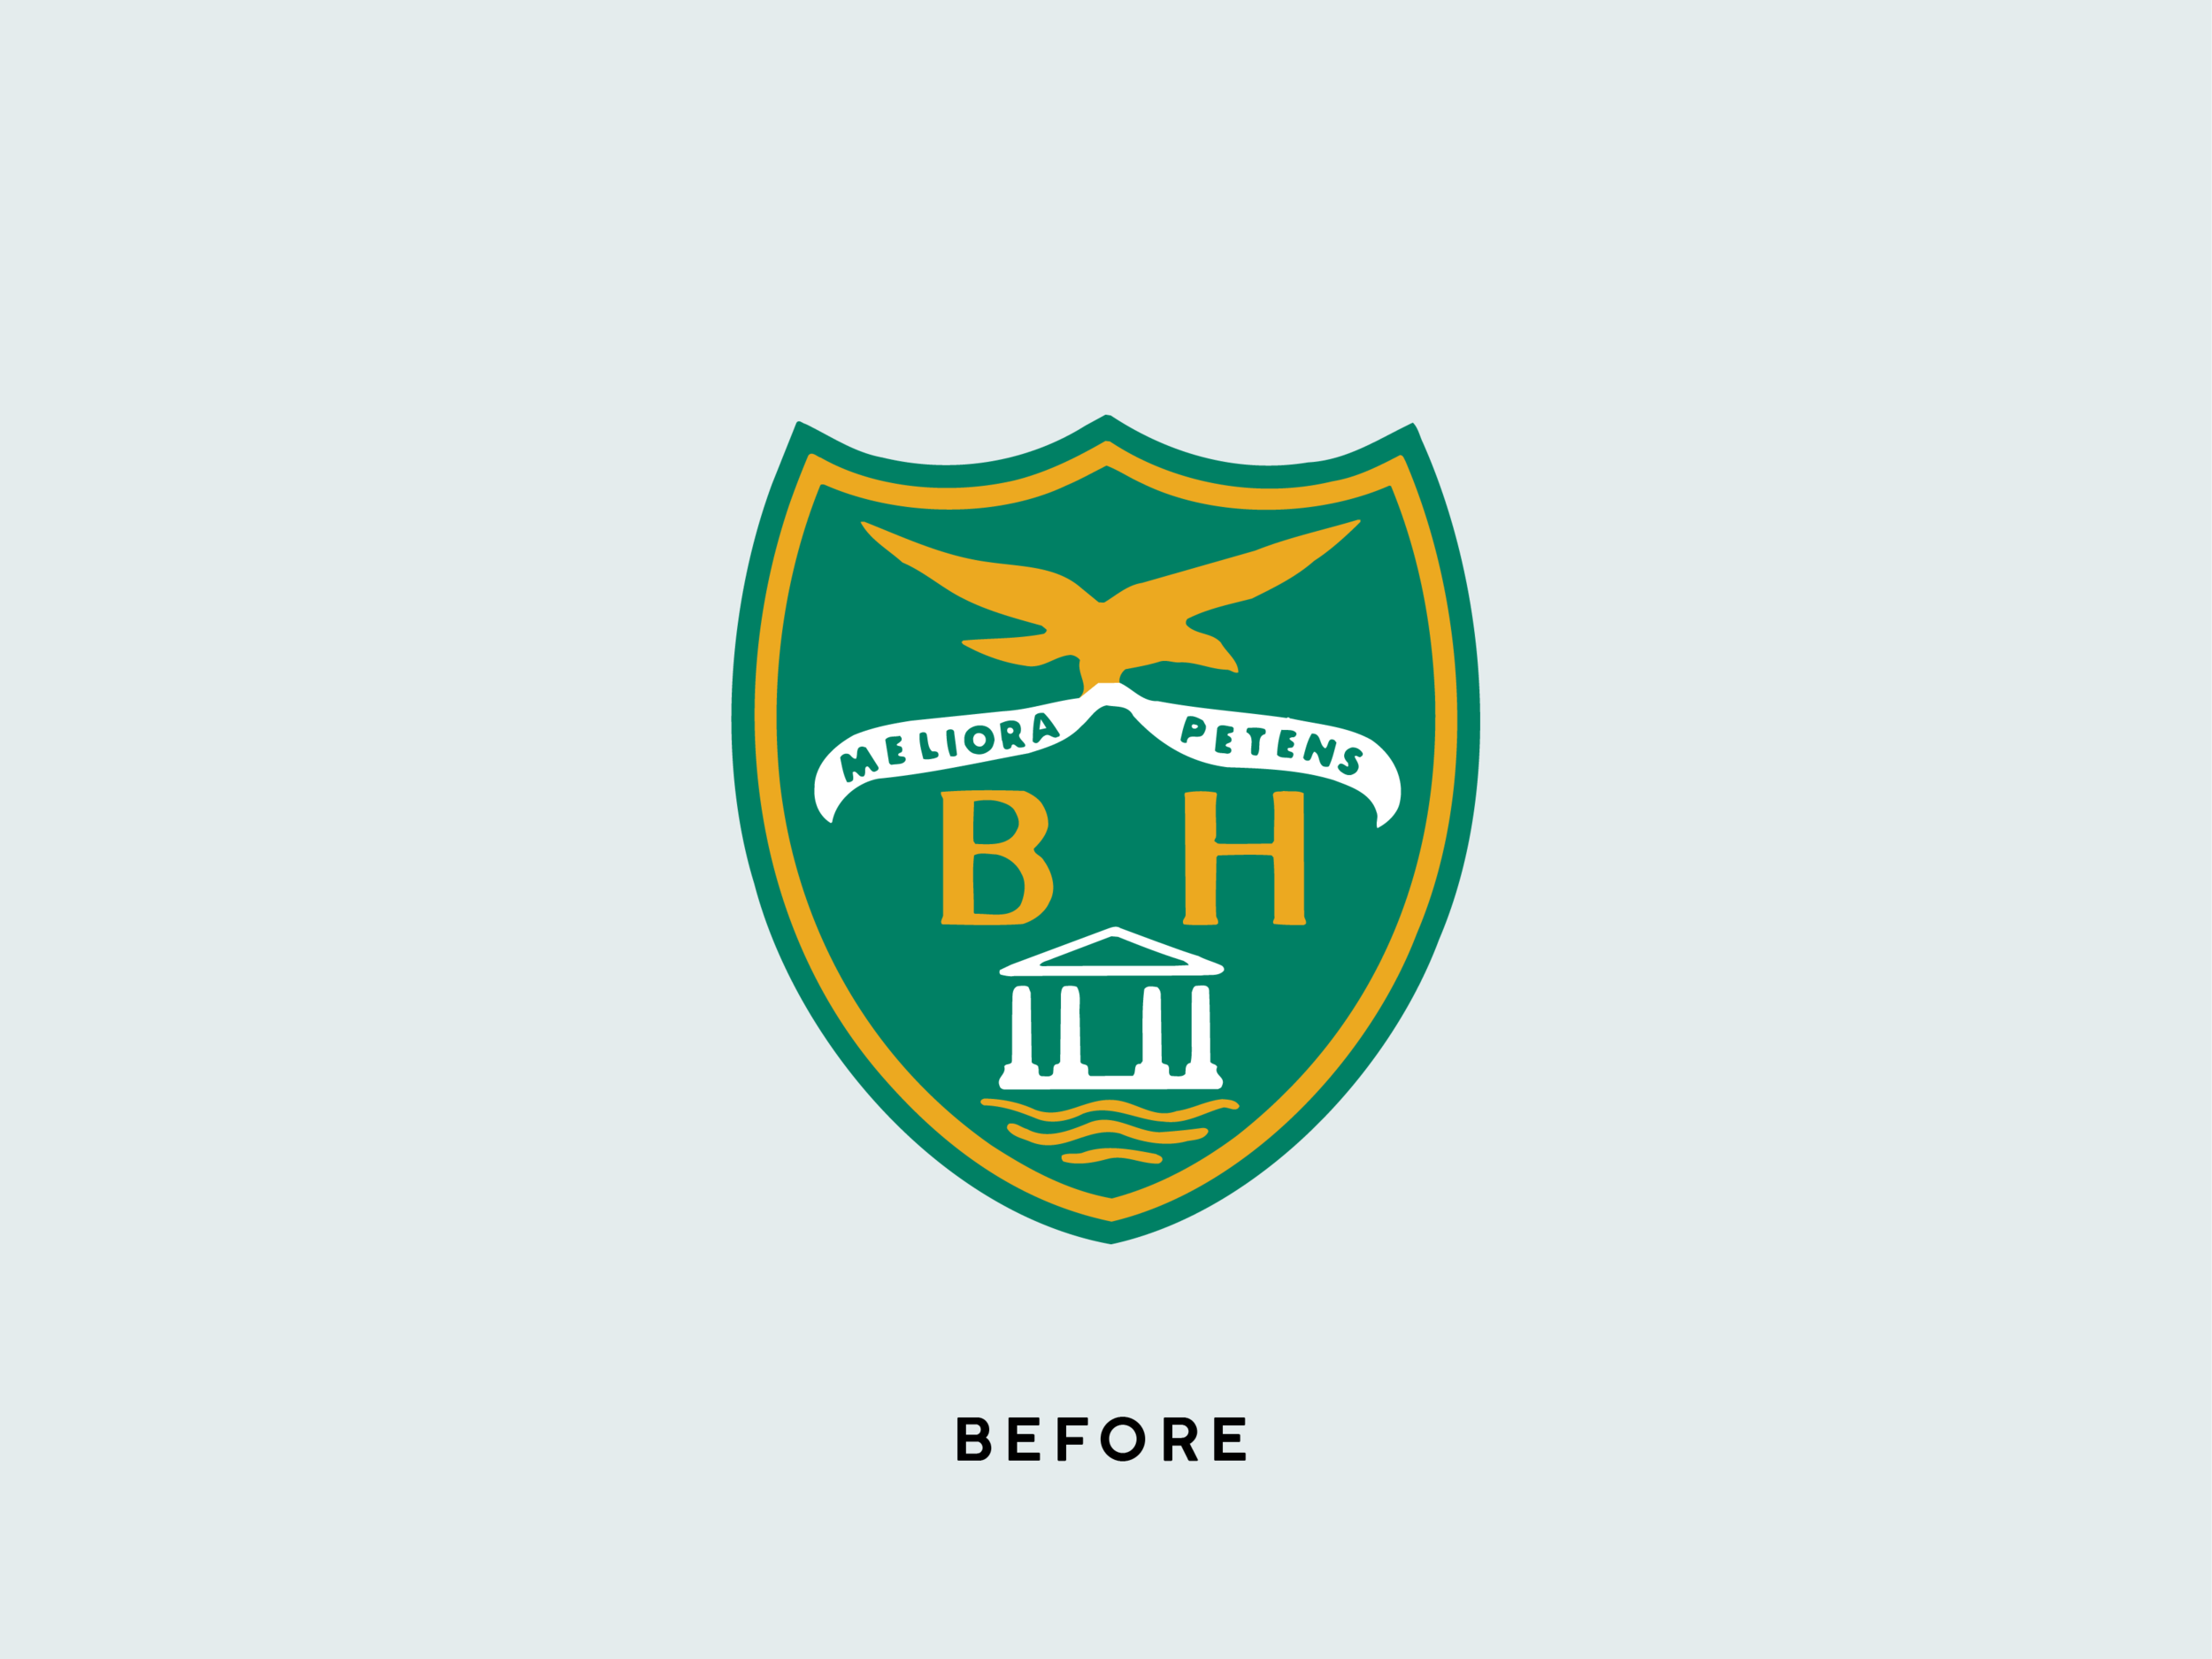 bhs-before-02.png